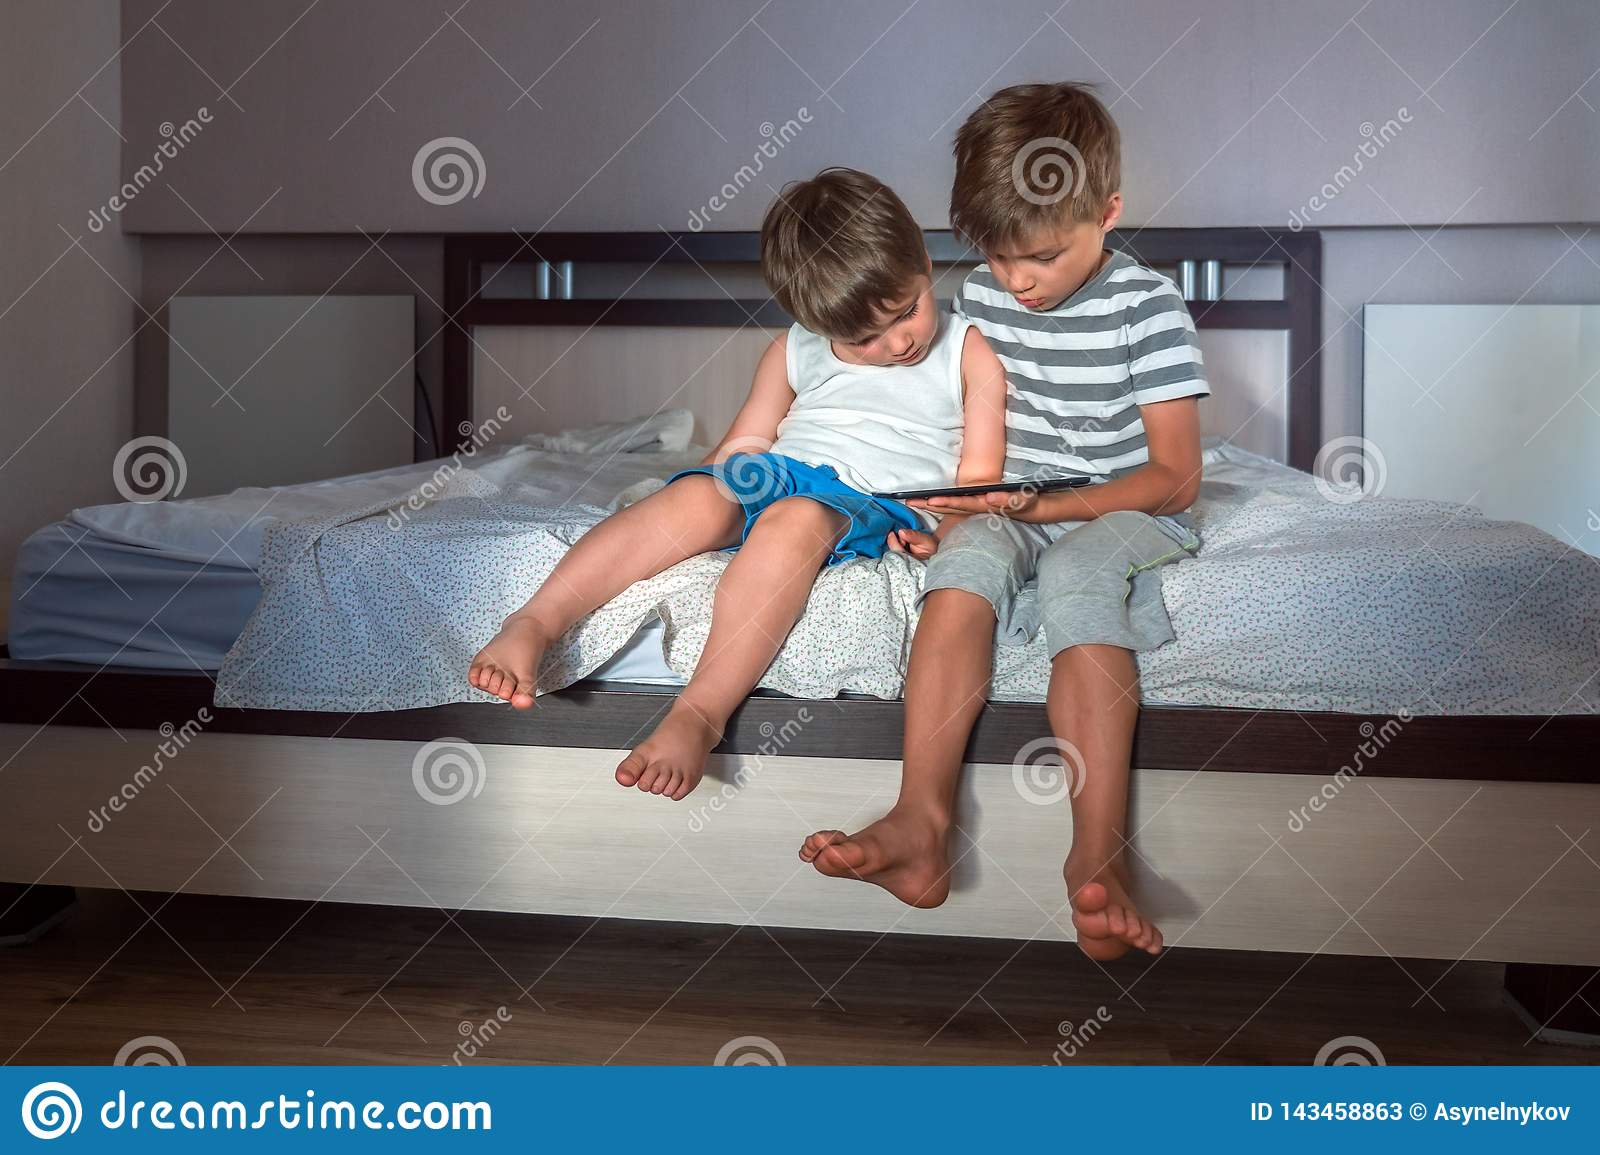 Children and gadgets. Two boys with tablet on the knees. Home schooling concept. Preschooling background. Home